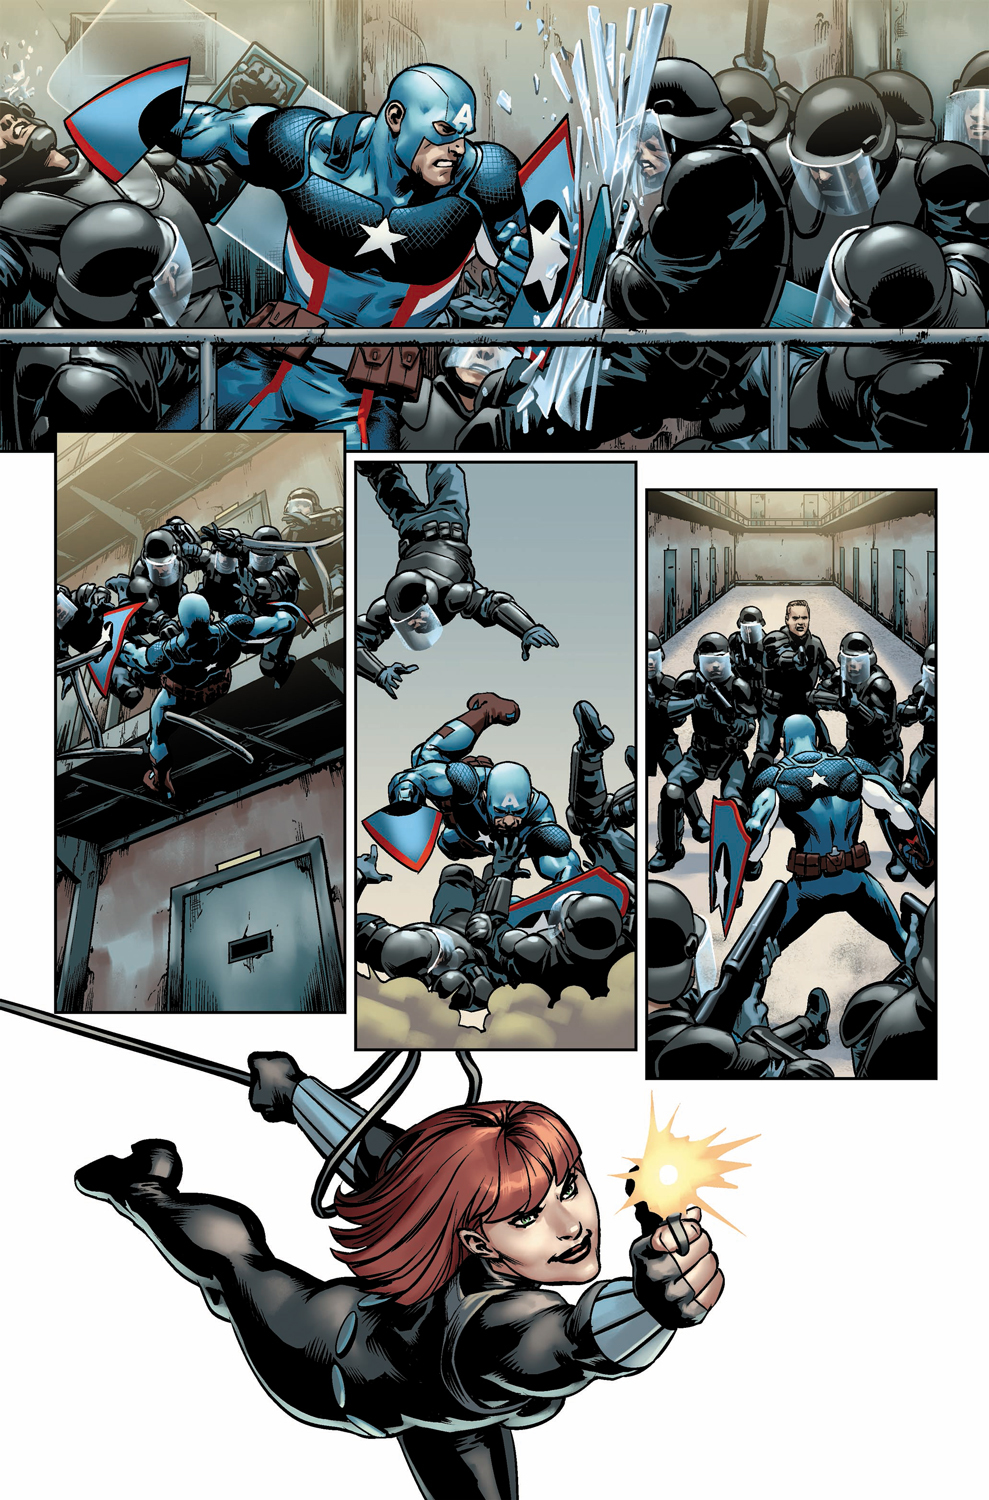 Preview for Marvel's Steve Rogers Captain America #7